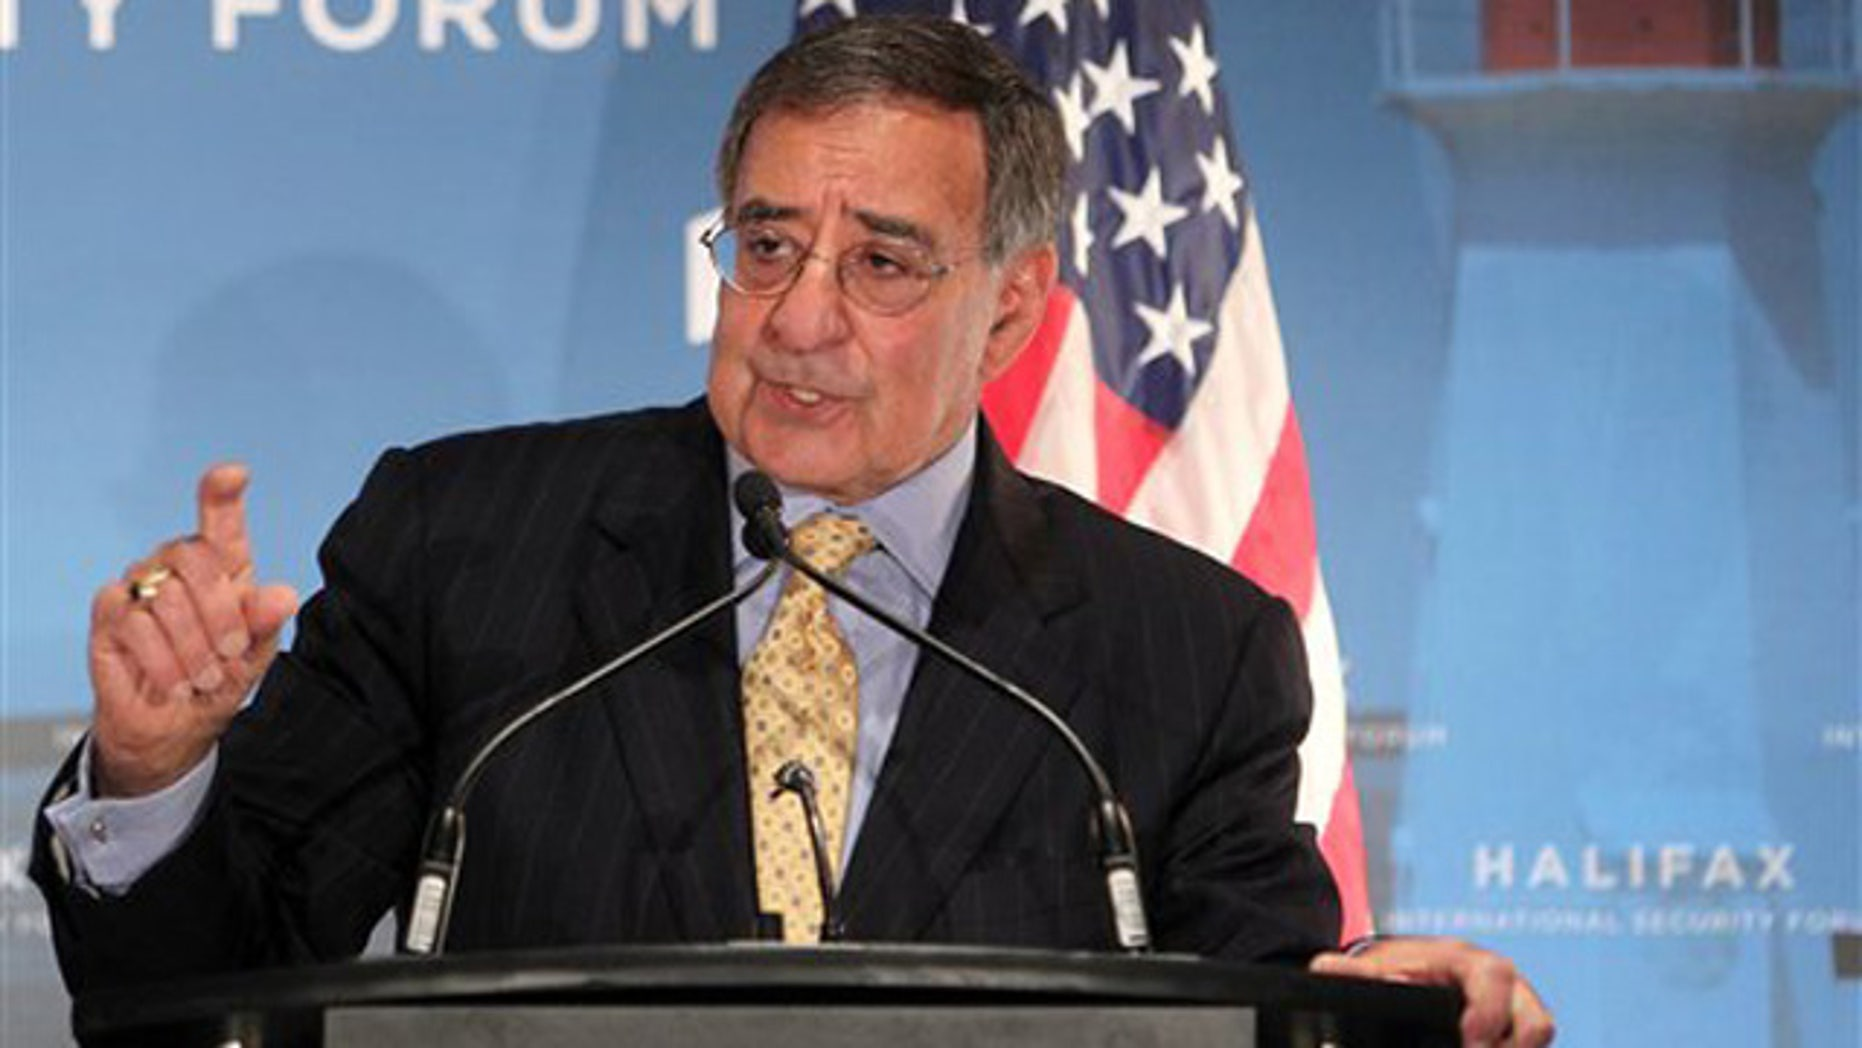 Nov. 18, 2011: Secretary of Defense Leon Panetta gestures while speaking during the opening news conference at the 2011 Halifax International Security Forum in Halifax, Nova Scotia, Canada.